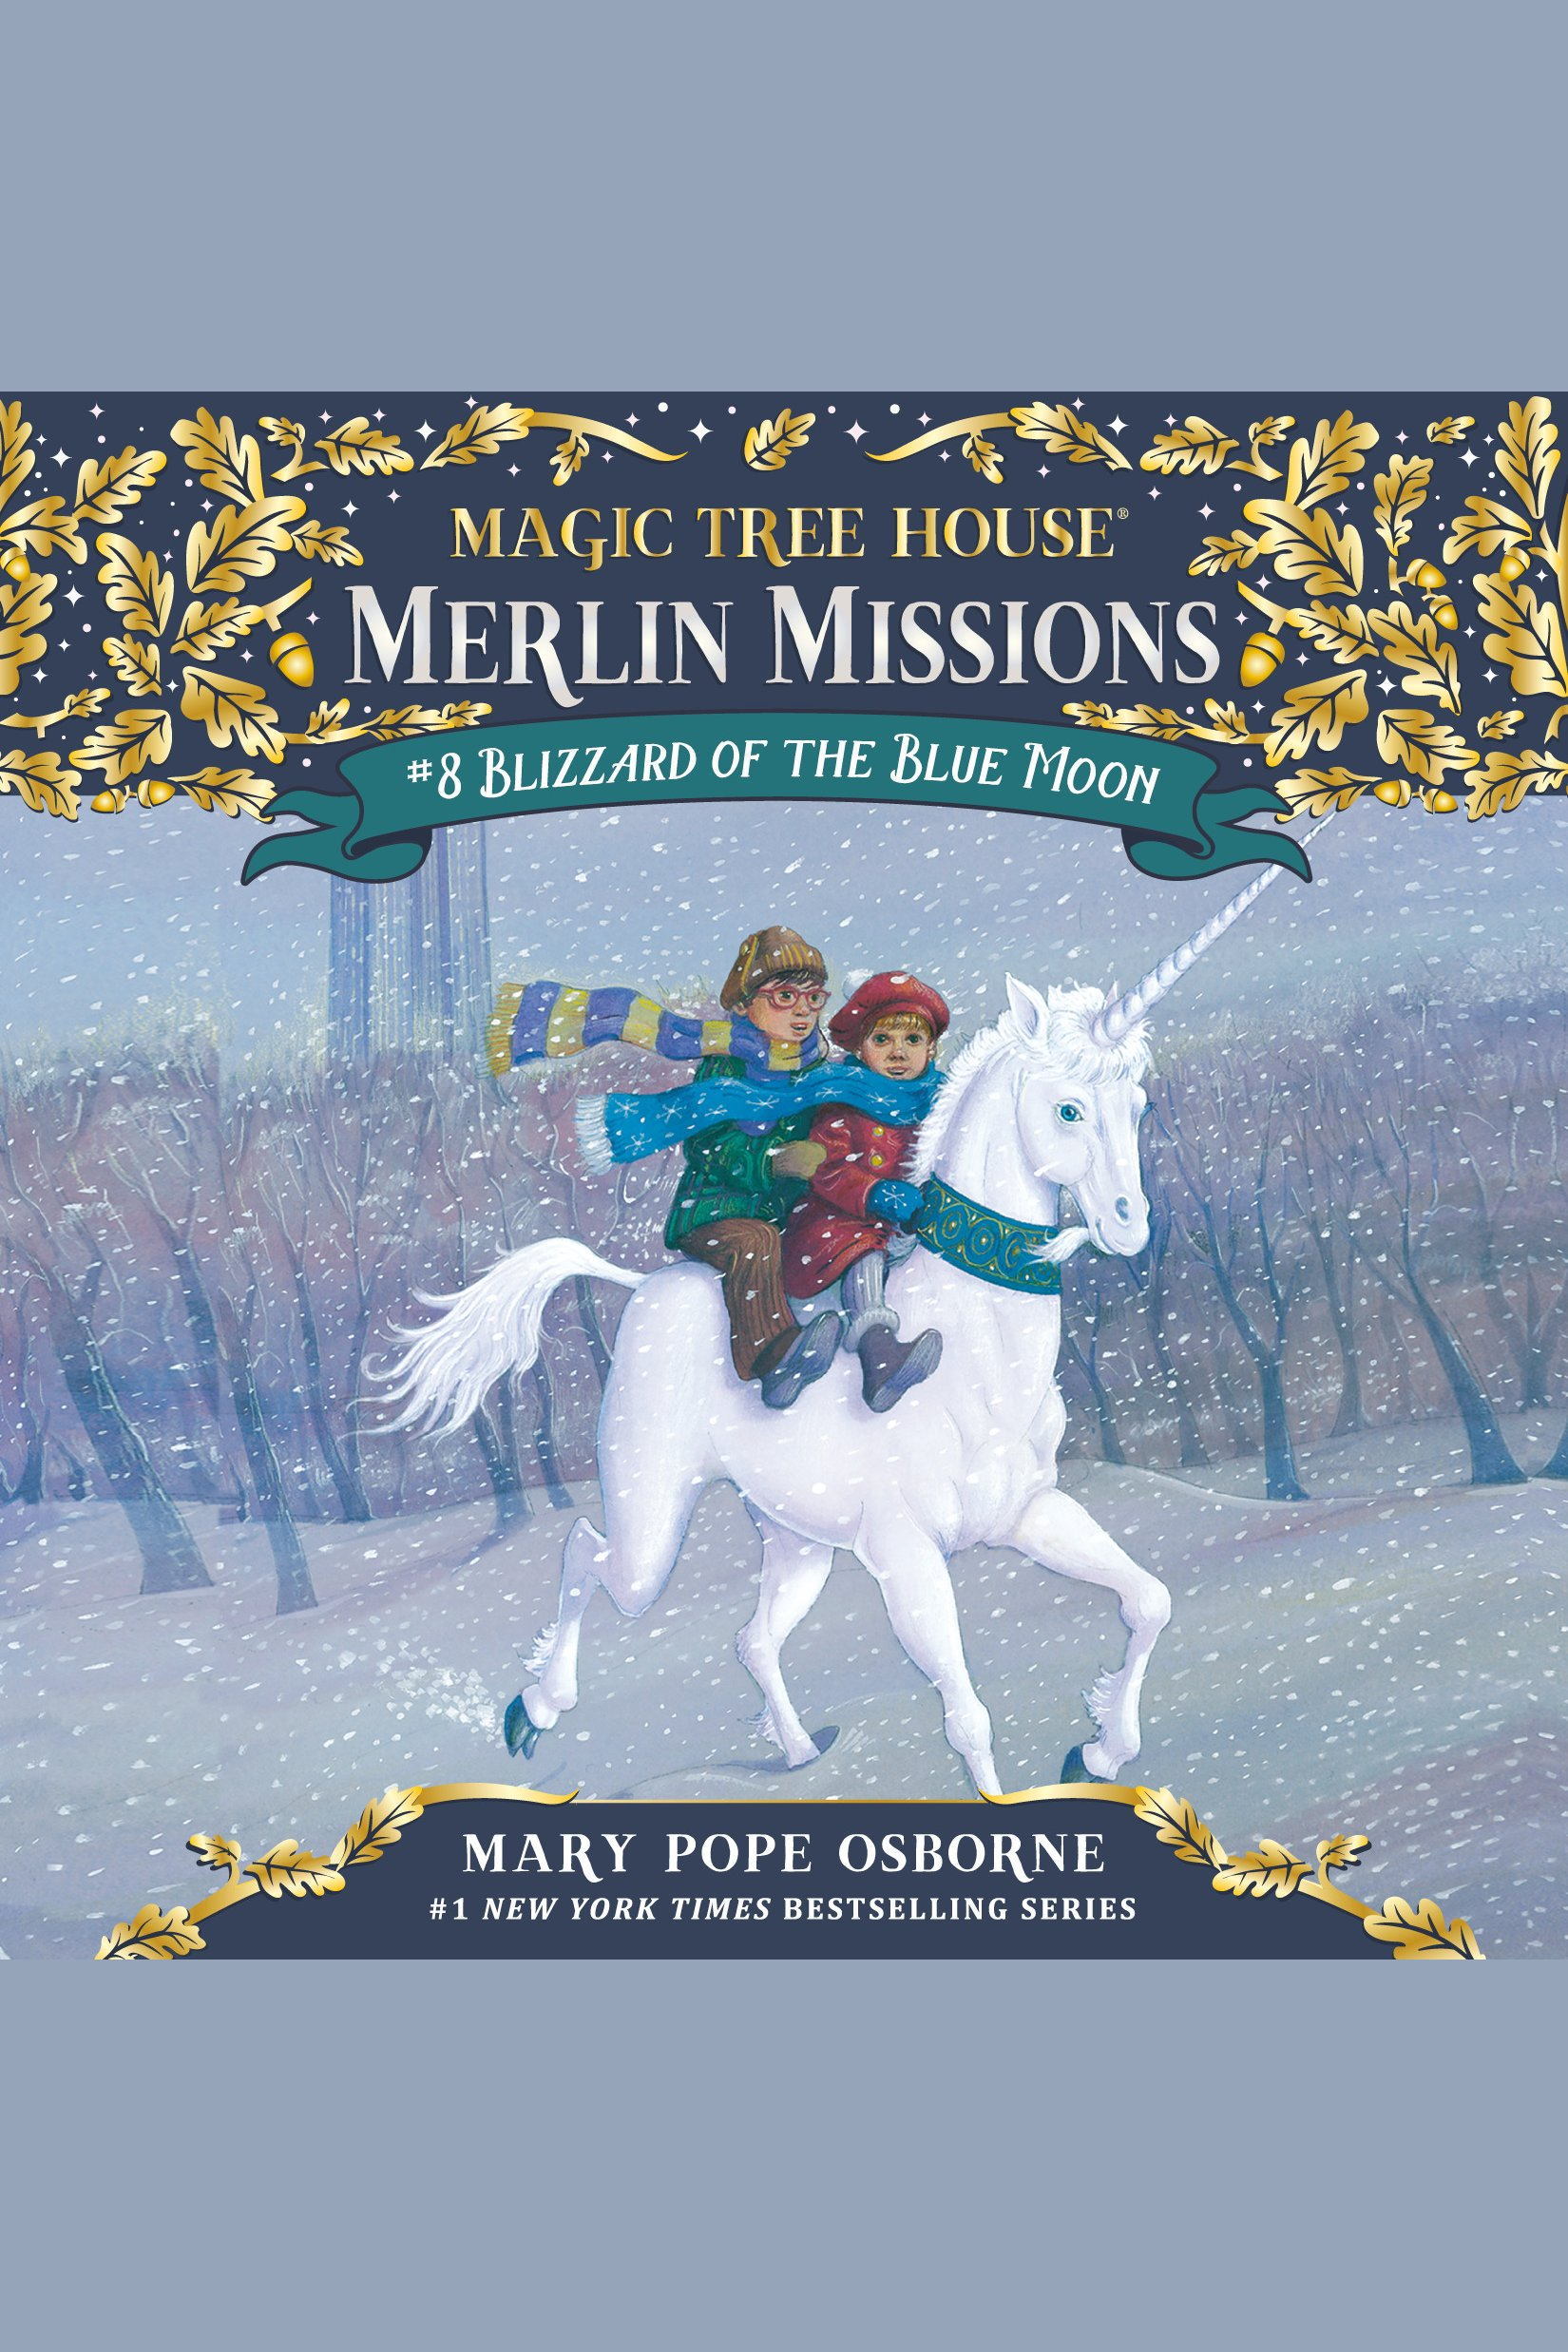 Blizzard of the blue moon cover image